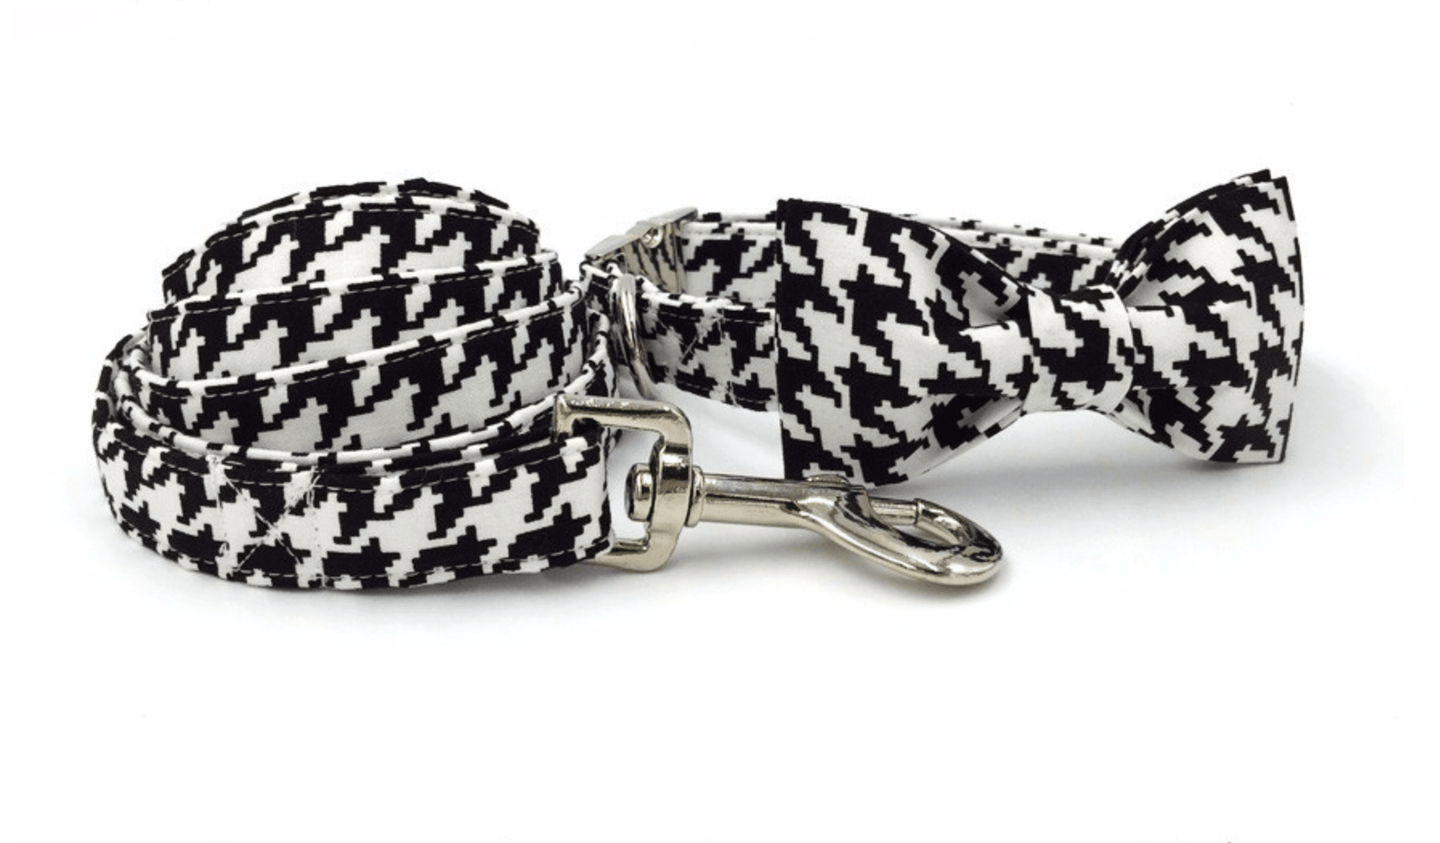 Collar and leash sets